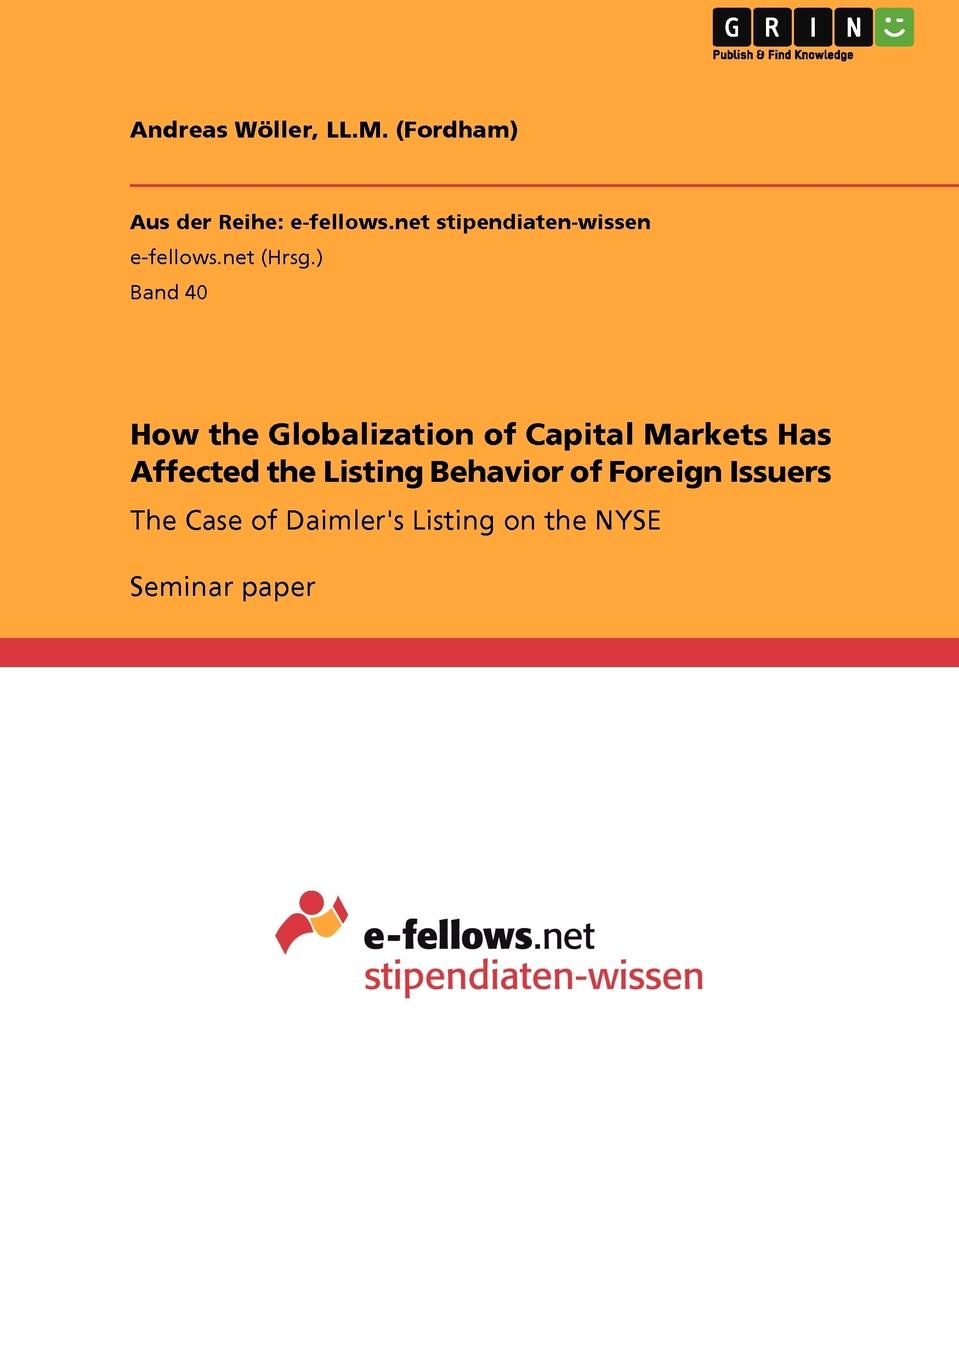 LL.M. (Fordham) Andreas Wöller How the Globalization of Capital Markets Has Affected the Listing Behavior of Foreign Issuers marin katusa the colder war how the global energy trade slipped from america s grasp